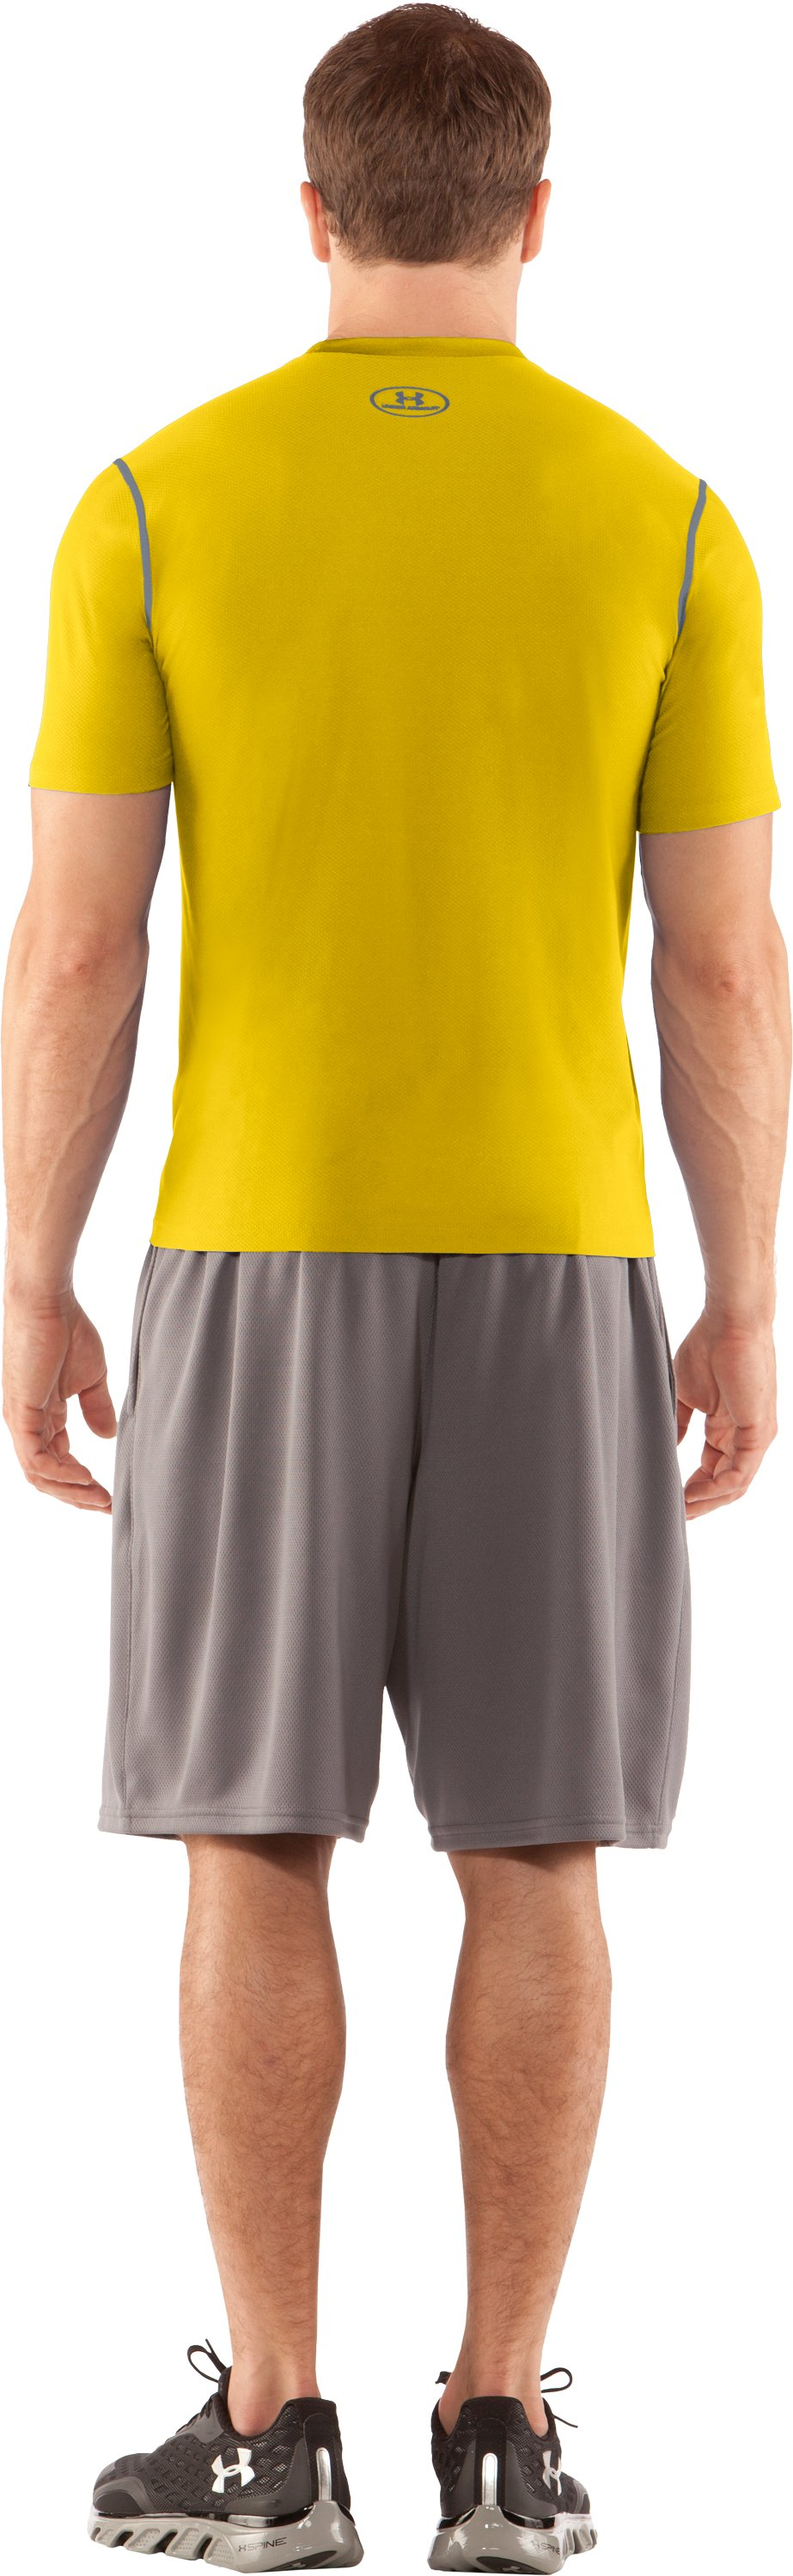 Men's HeatGear® Fitted Short Sleeve Crew, Taxi, Back